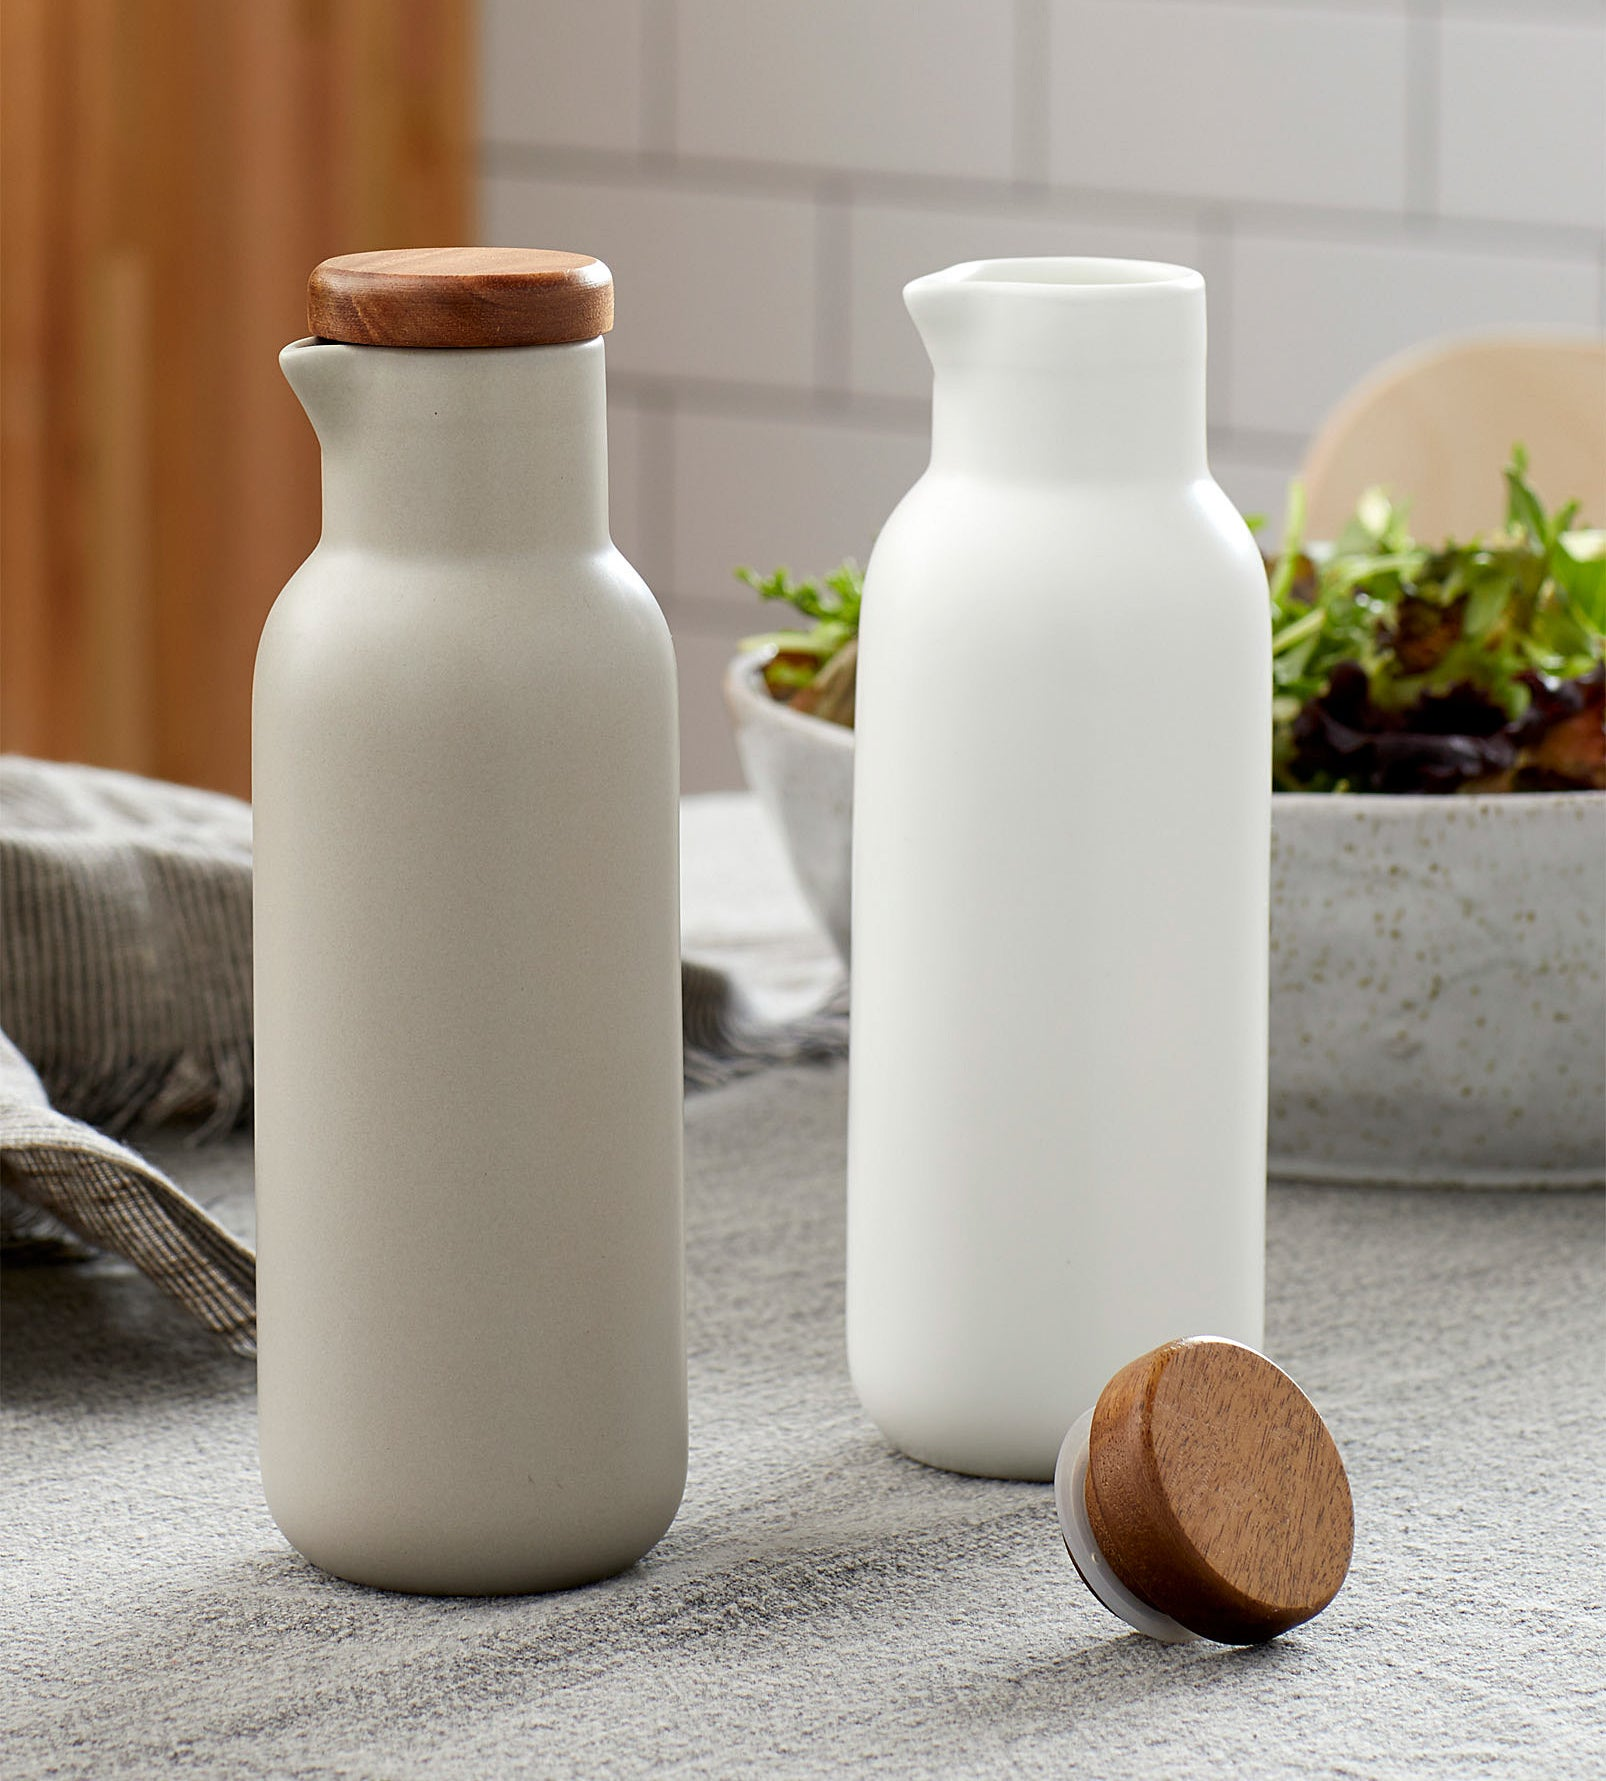 A pair of porcelain oil and vinegar bottles on a kitchen table